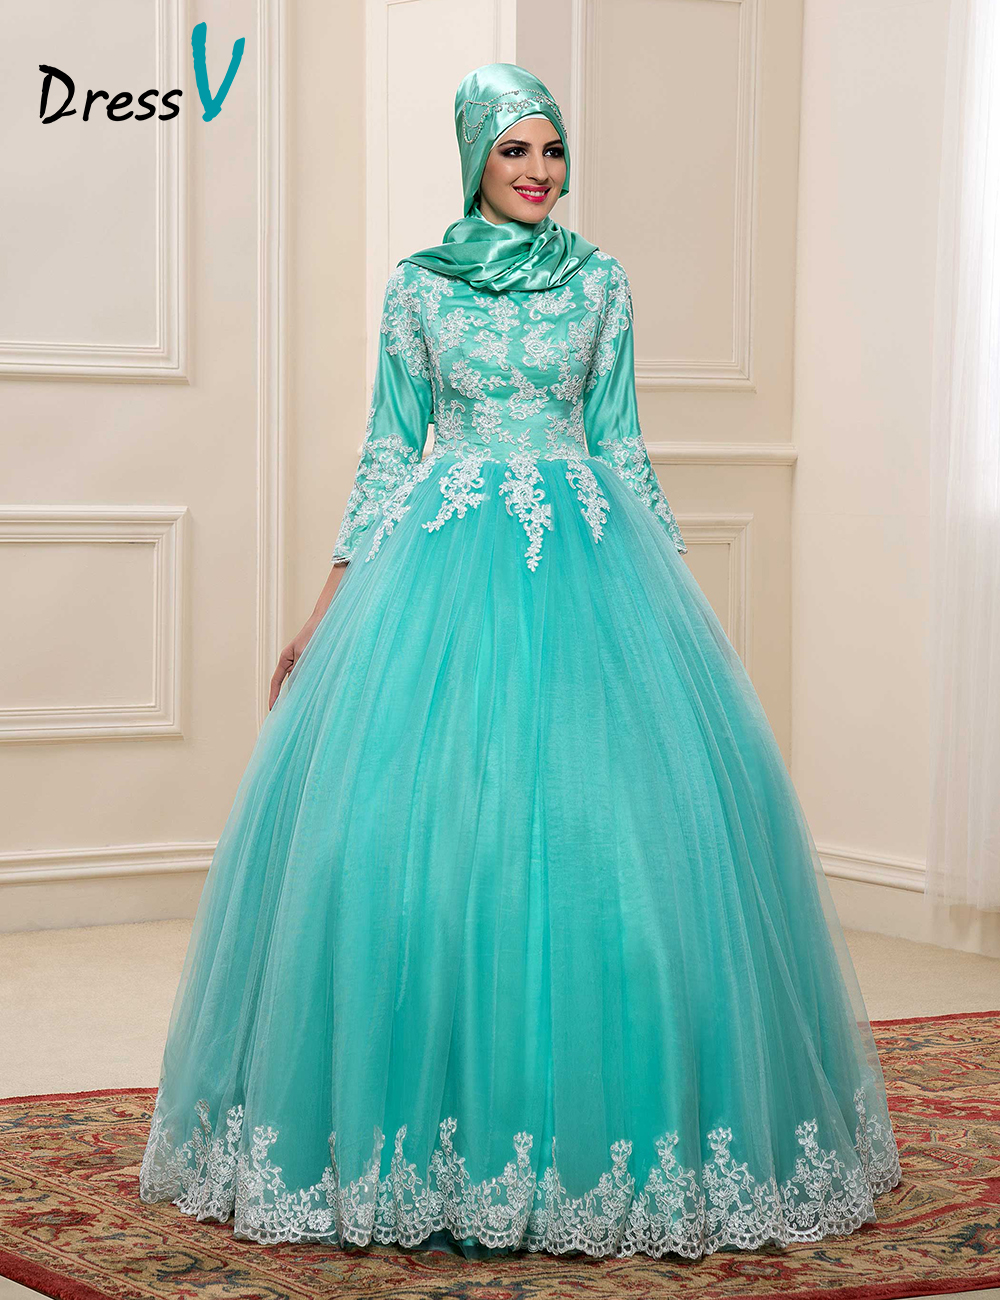 2017 muslim wedding dresses with hijab high neck 3 4 for Plus size wedding dresses with color and sleeves